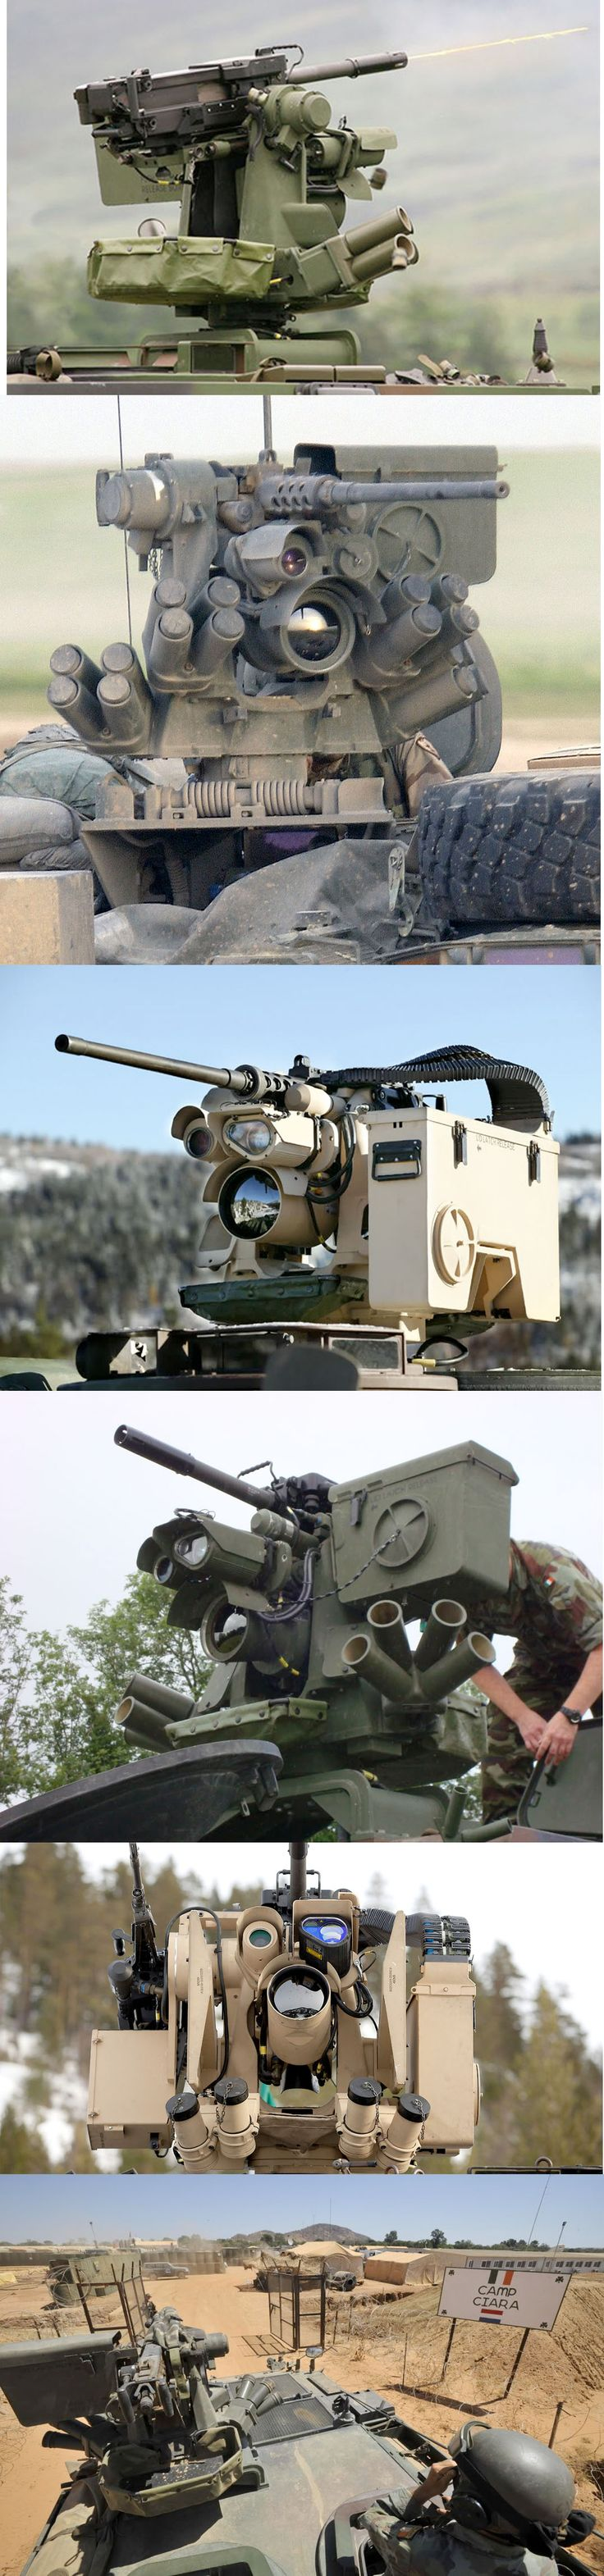 Protector (RWS)      The M151 PROTECTOR Remote Weapon Station is a remotely controlled weapons station (RWS) that can be mounted to vehicles and stationary platforms. It is manufactured by Kongsberg Defence & Aerospace[1] of Norway and Thales Group of France. [via]